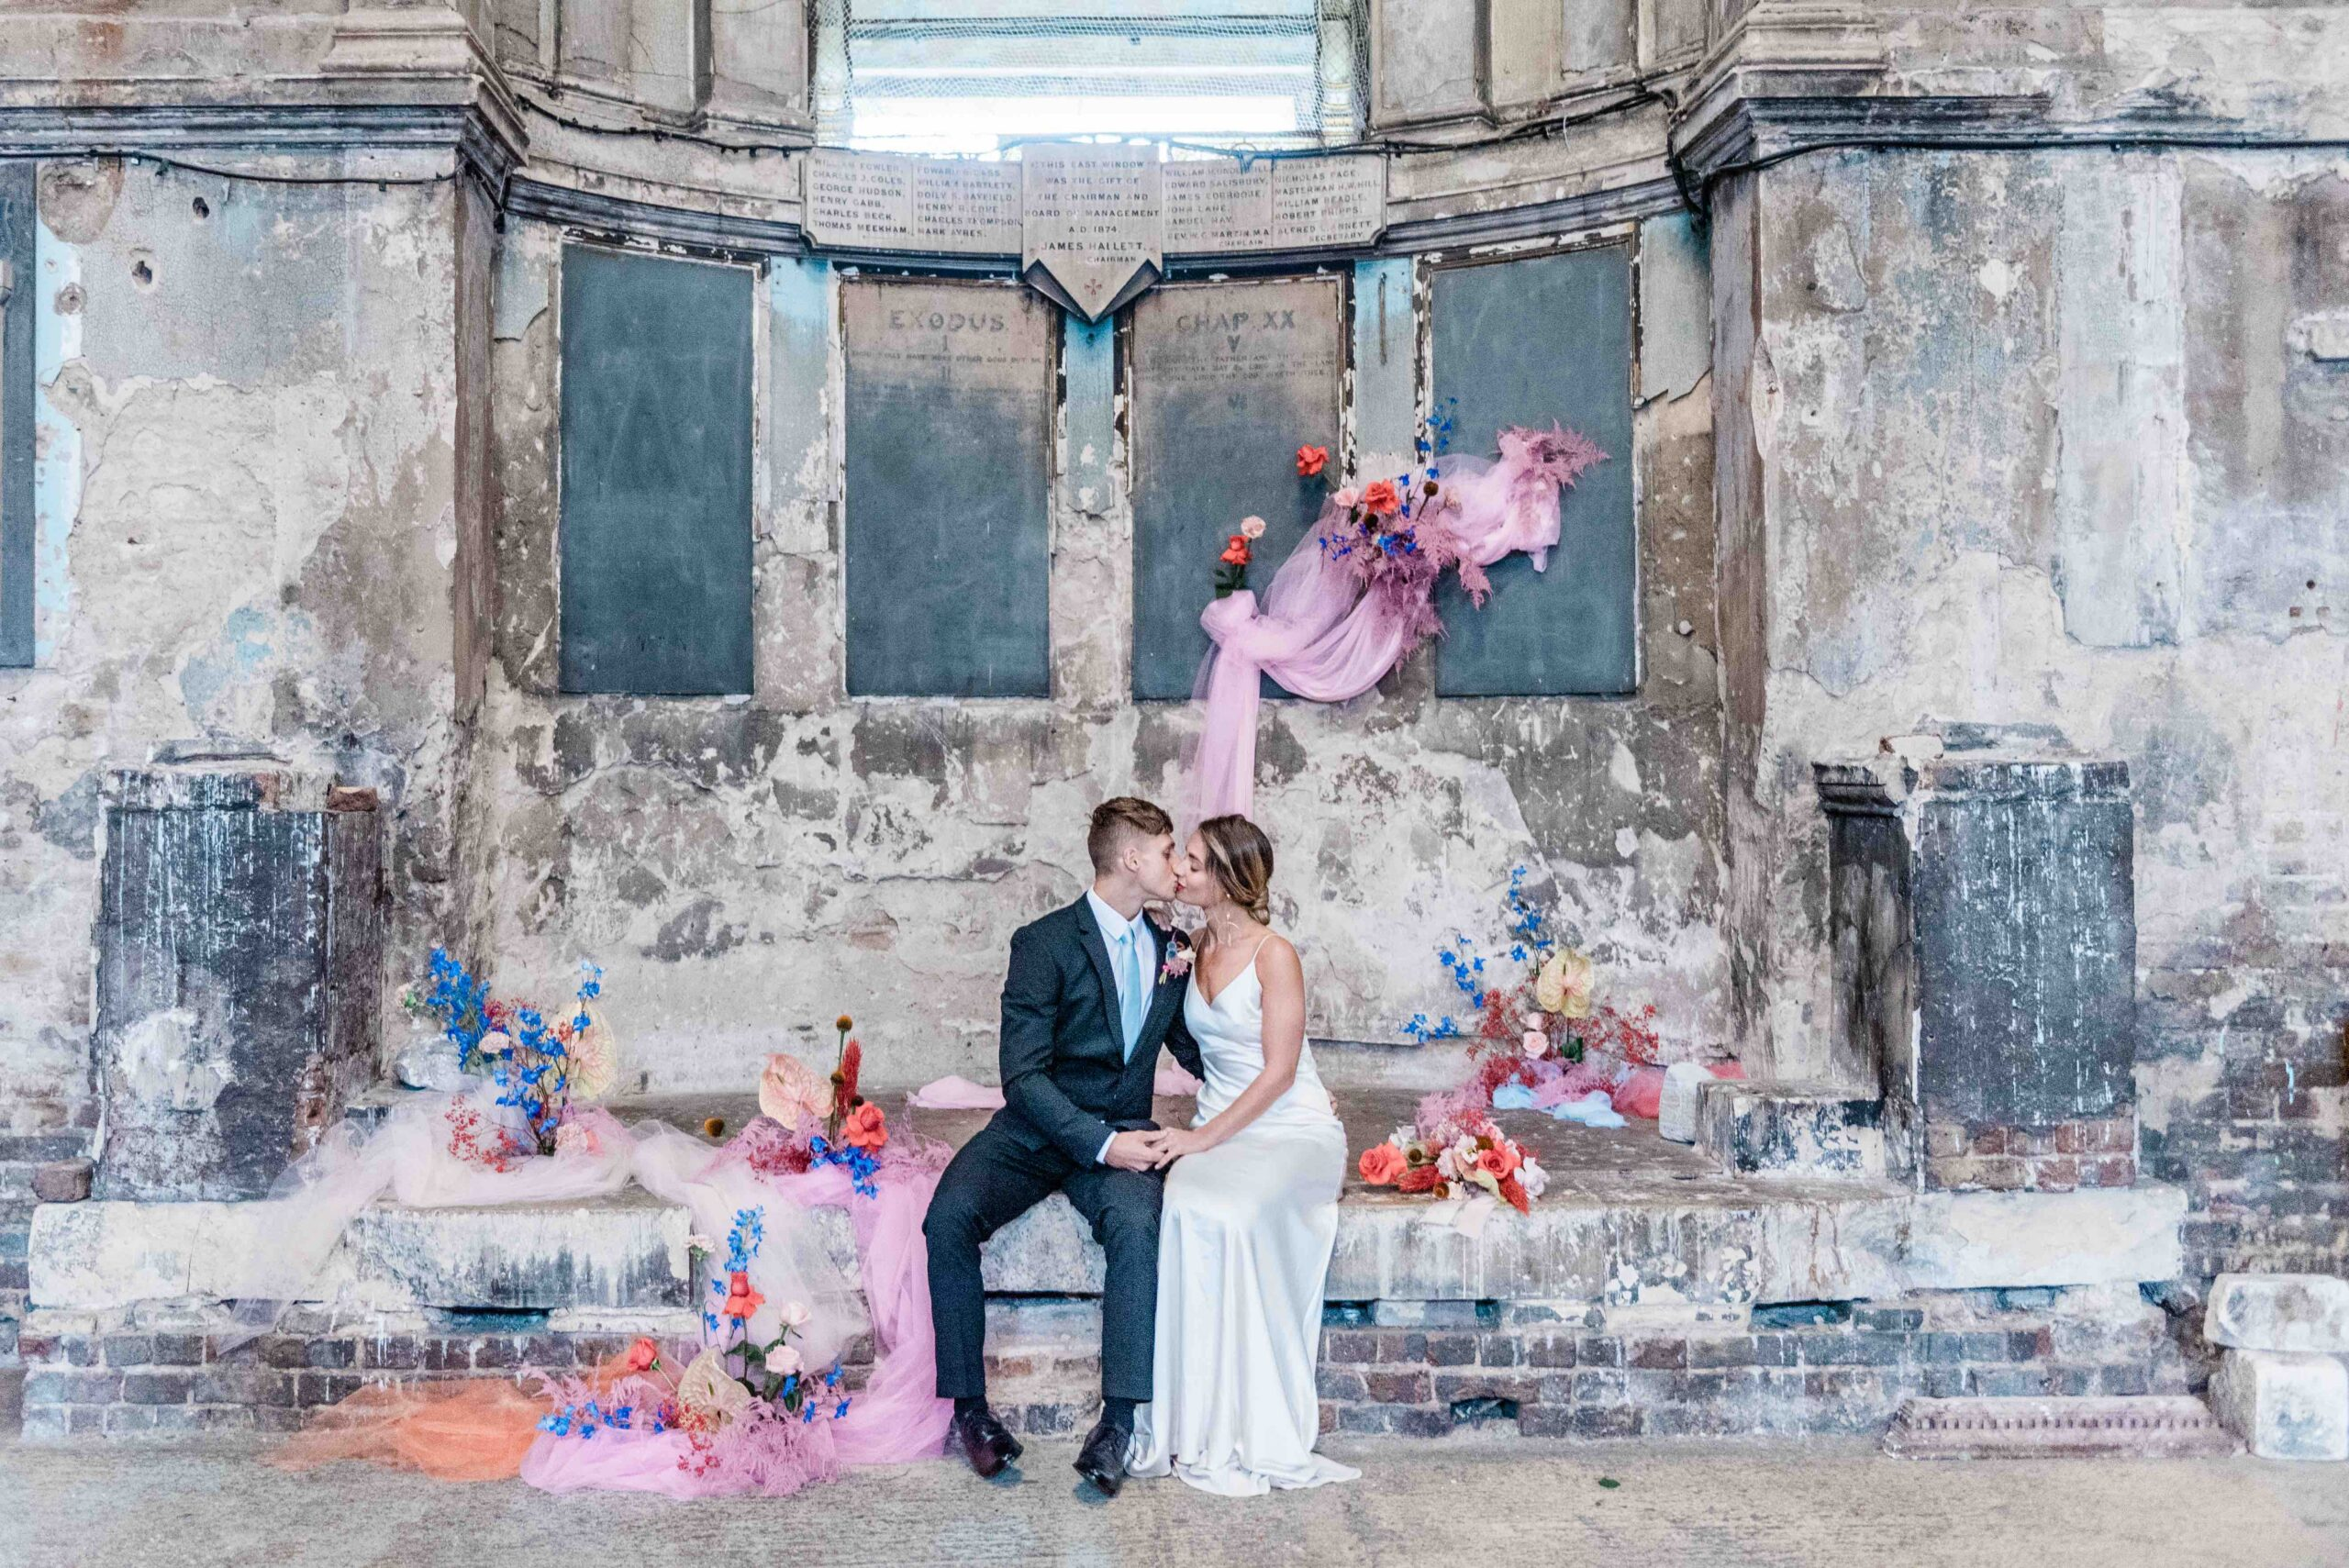 A bride and groom at Mavericks Projects' Asylum Chapel in London